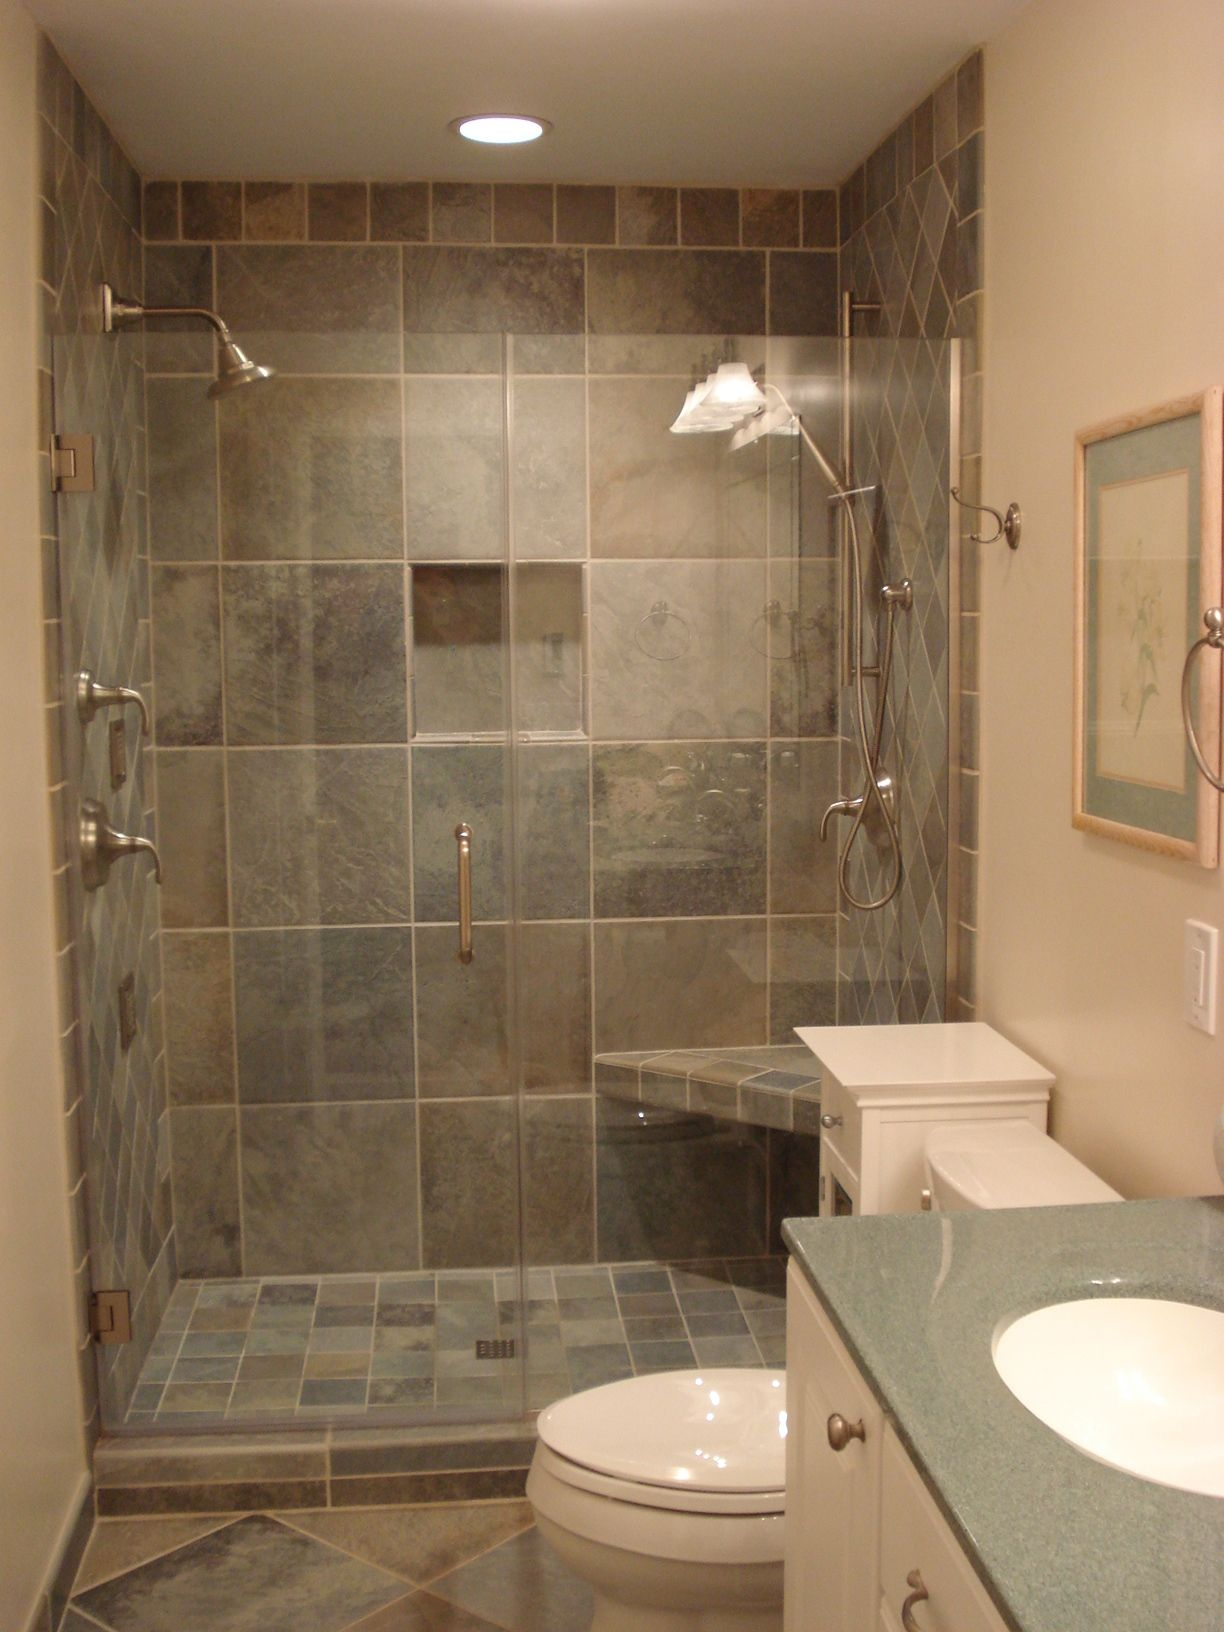 30 Best Bathroom Remodel Ideas You Must Have a Look | Bathroom ...